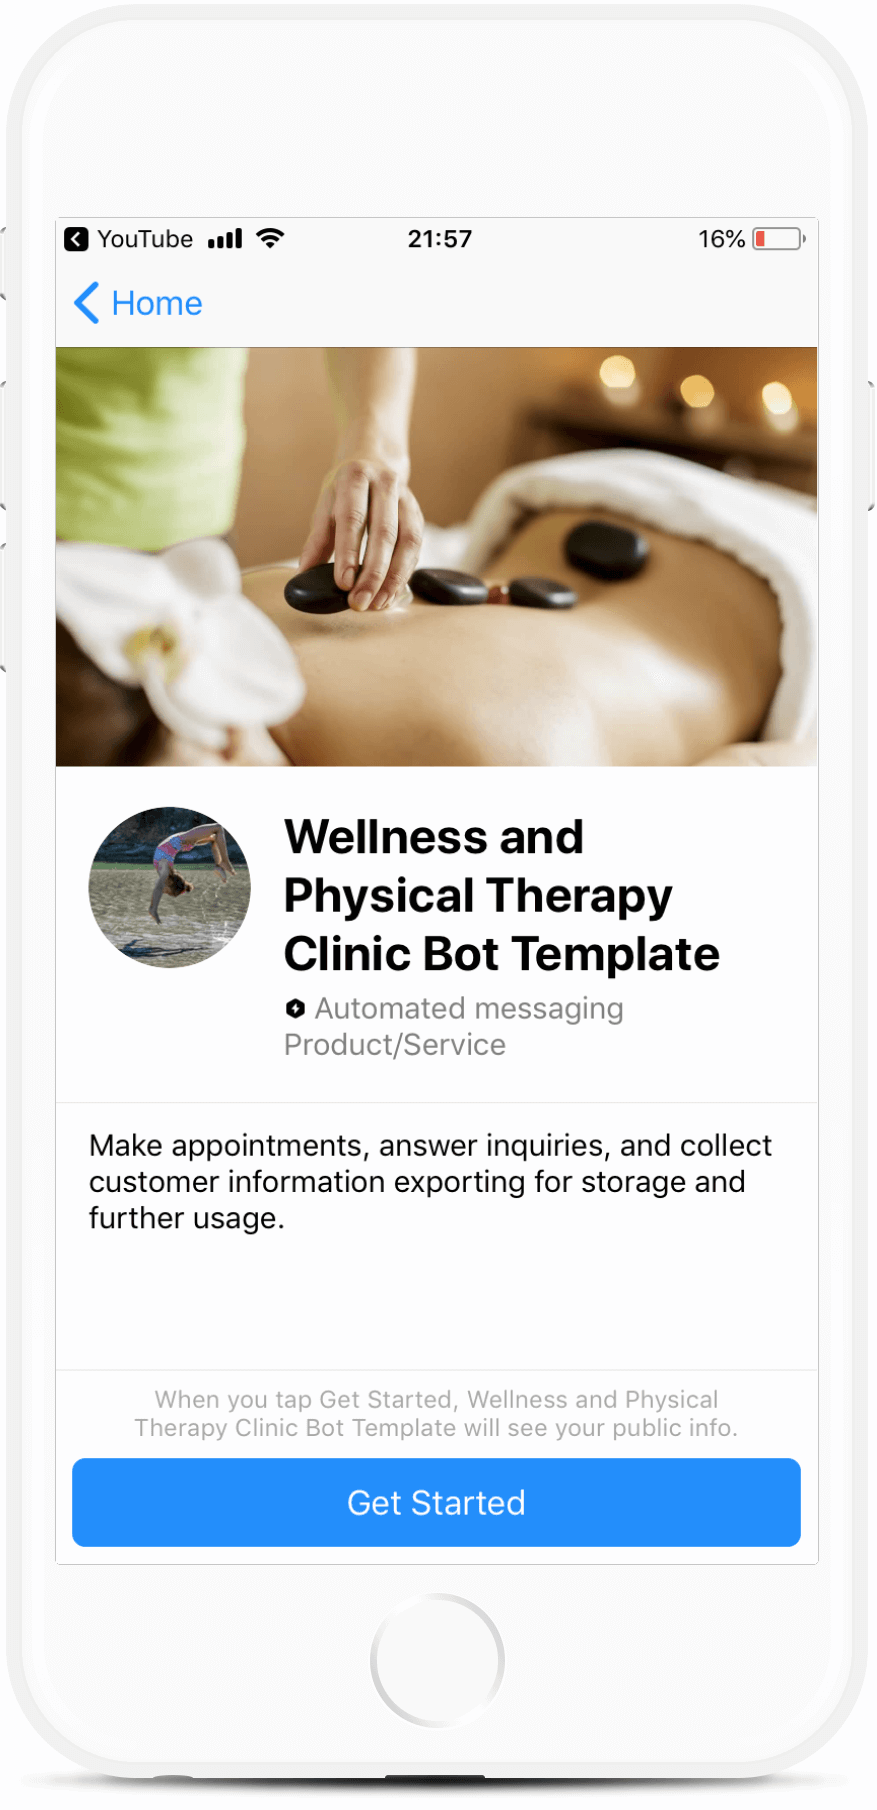 Wellness and Physical Therapy Services Messenger Bot - Botmakers